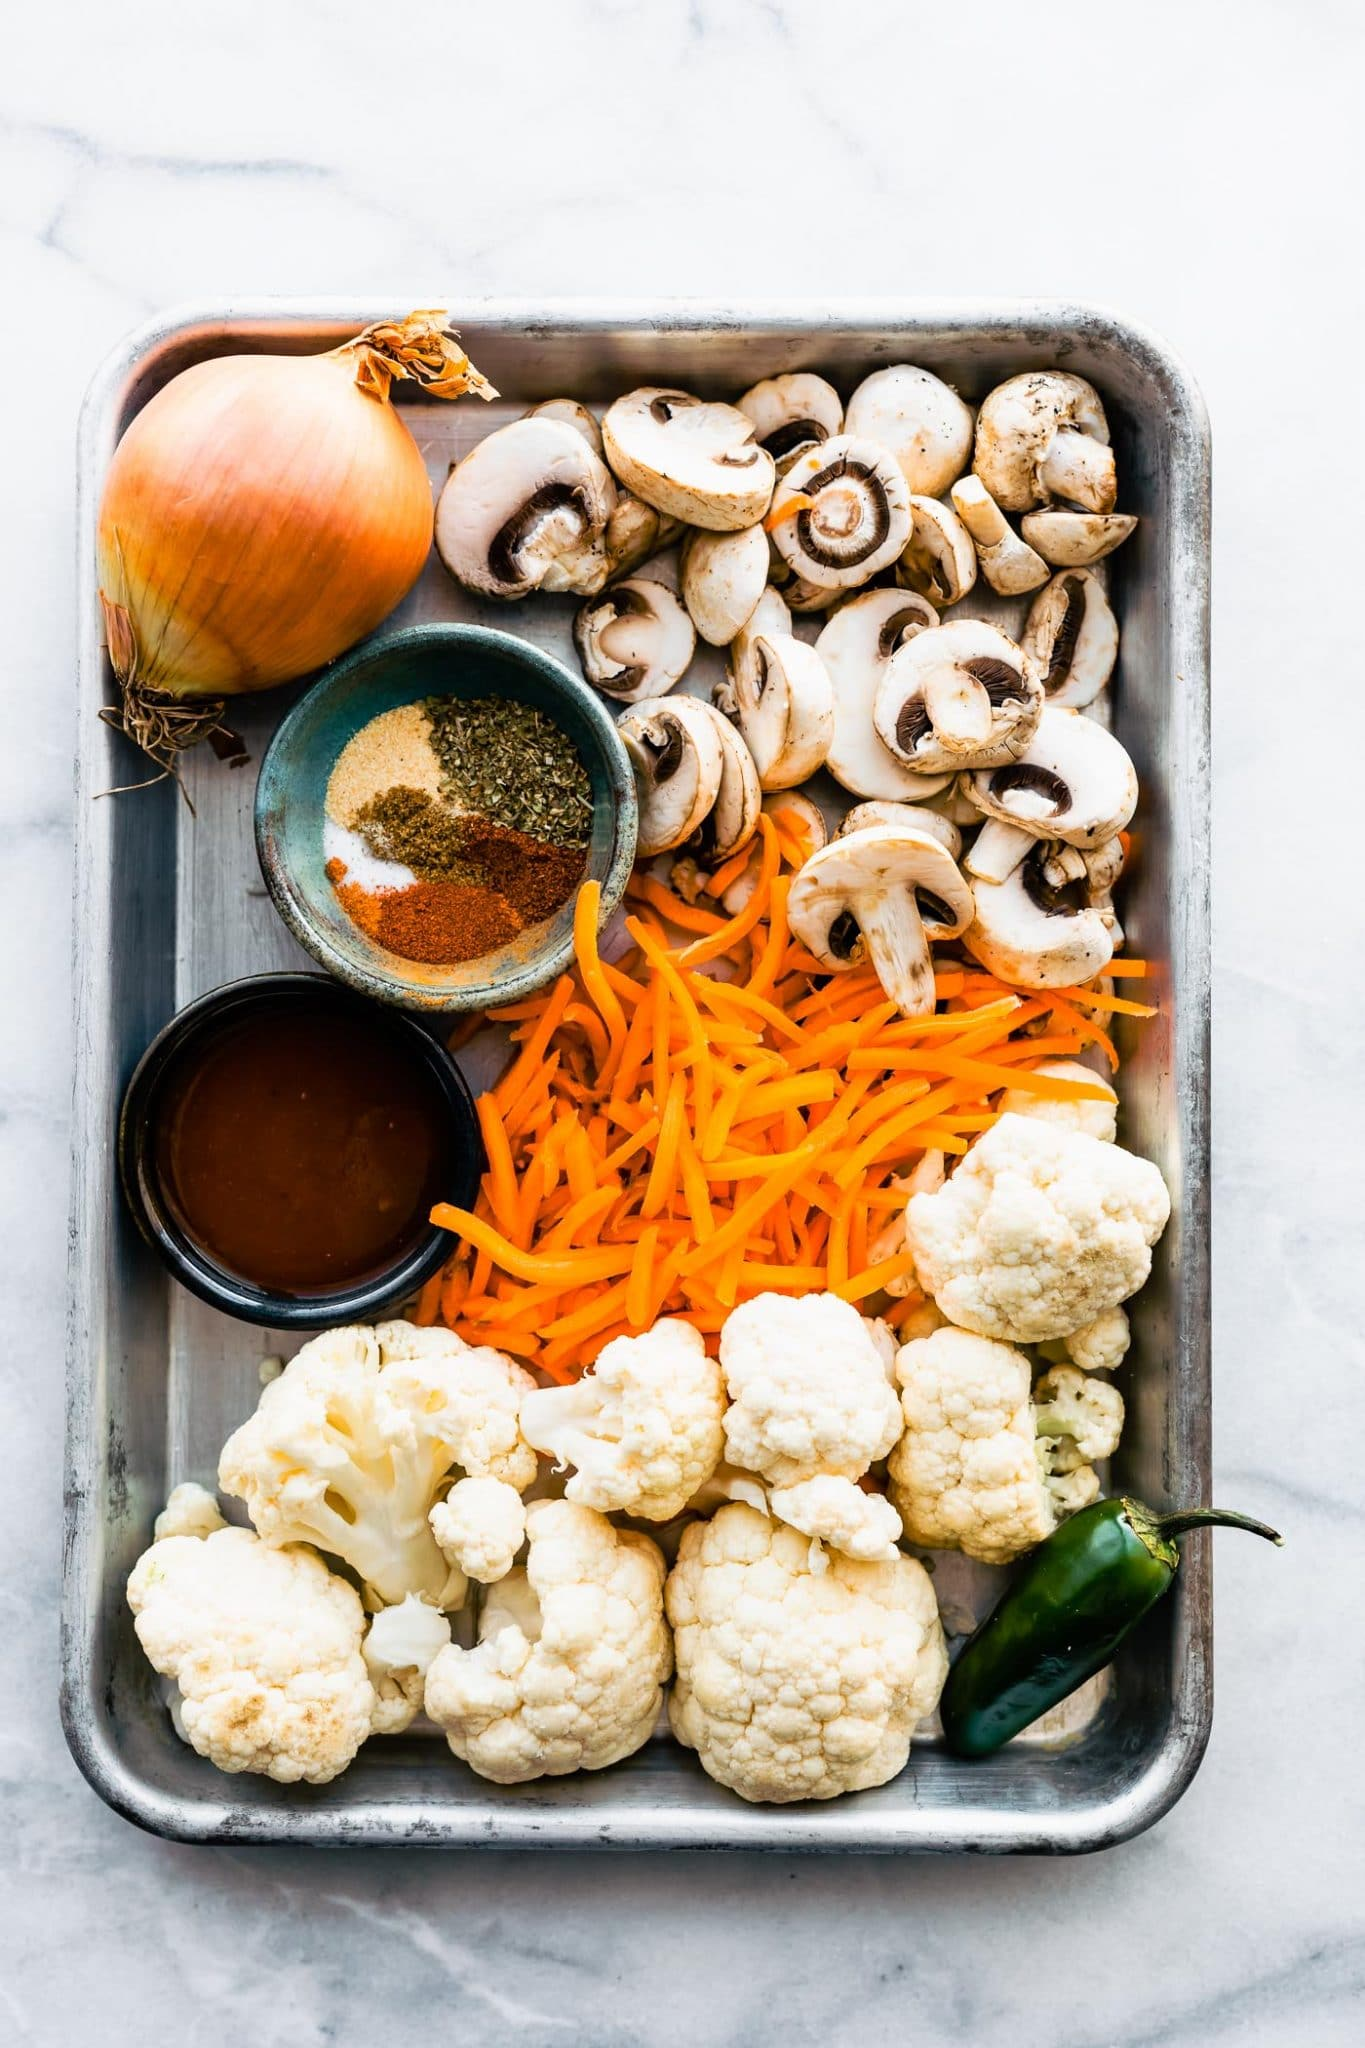 Overhead image of a sheet pan with ingredients for vegan taco meat including: yellow onion, mushrooms, spices, shredded carrots, cauliflower florets, and jalapeno.